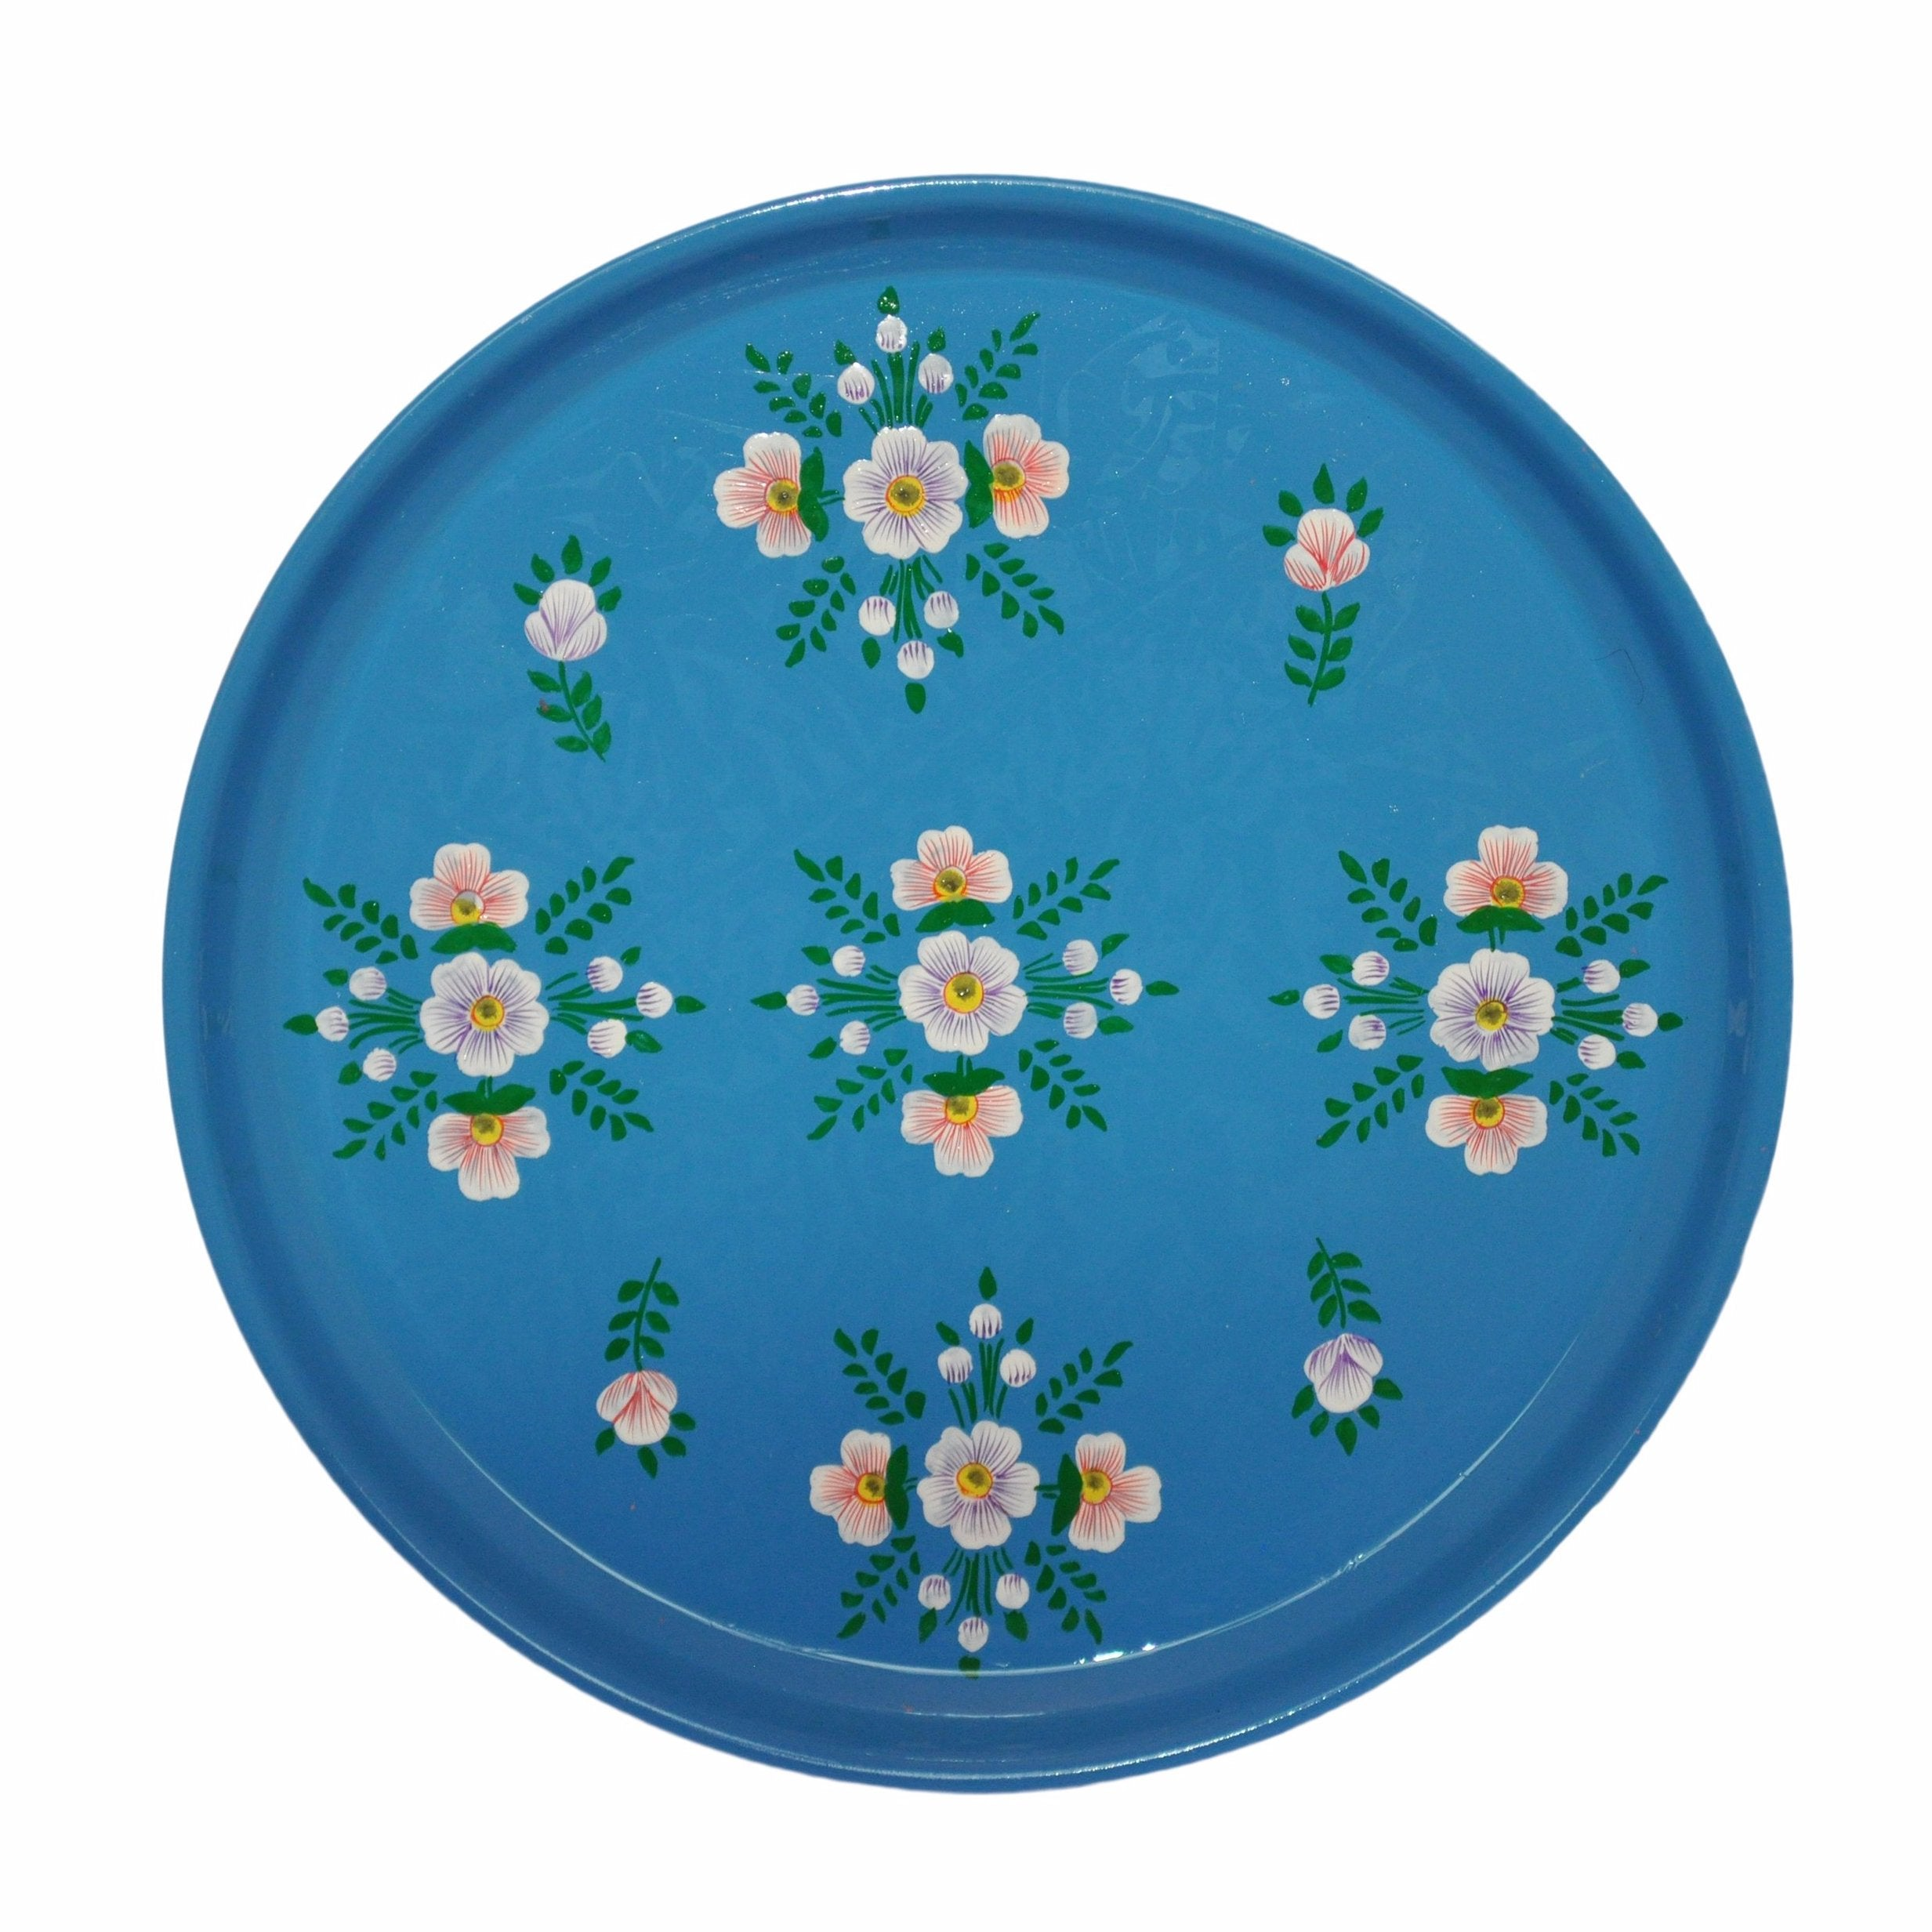 Azure Blue Floral Enamelware Round Tray by Jasmine White on OOSTOR.com